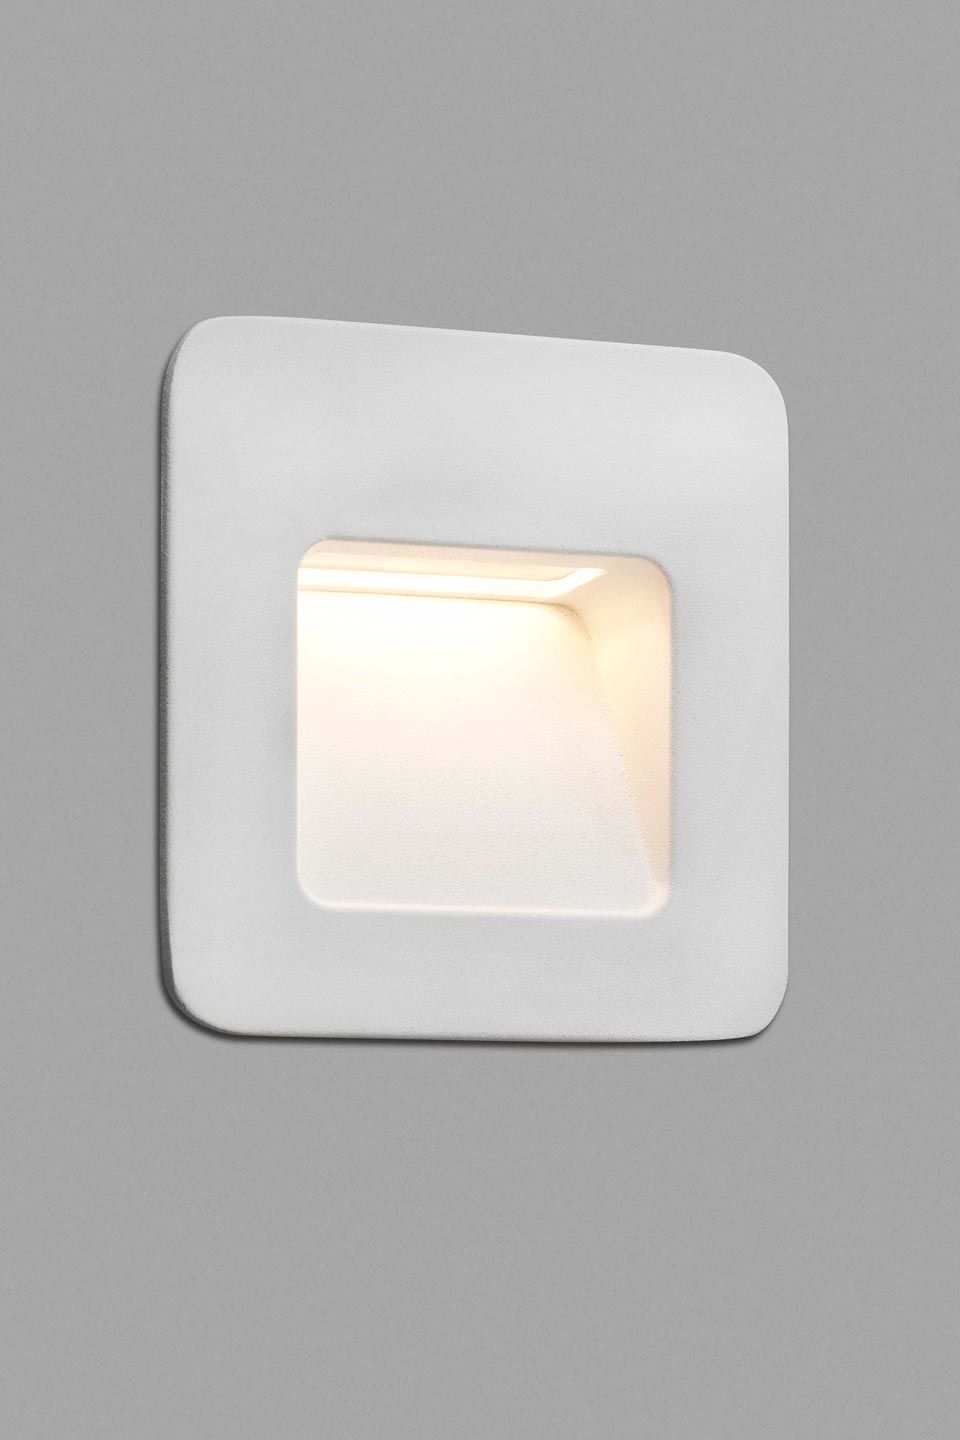 Nase Small White Recessed Outdoor Step Light Faro Ref 19070641